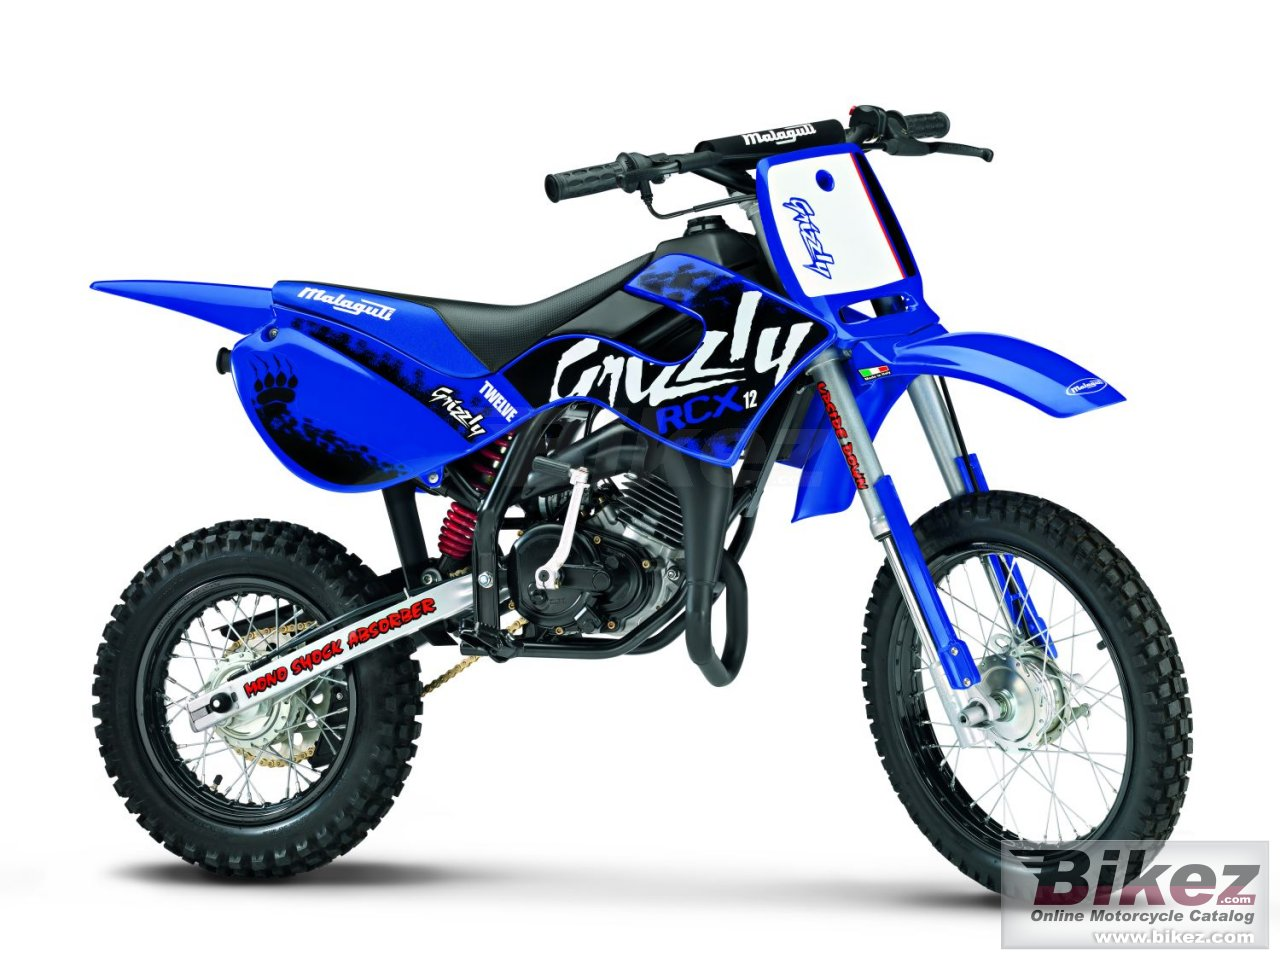 Big Malaguti grizzly rcx 12 picture and wallpaper from Bikez.com